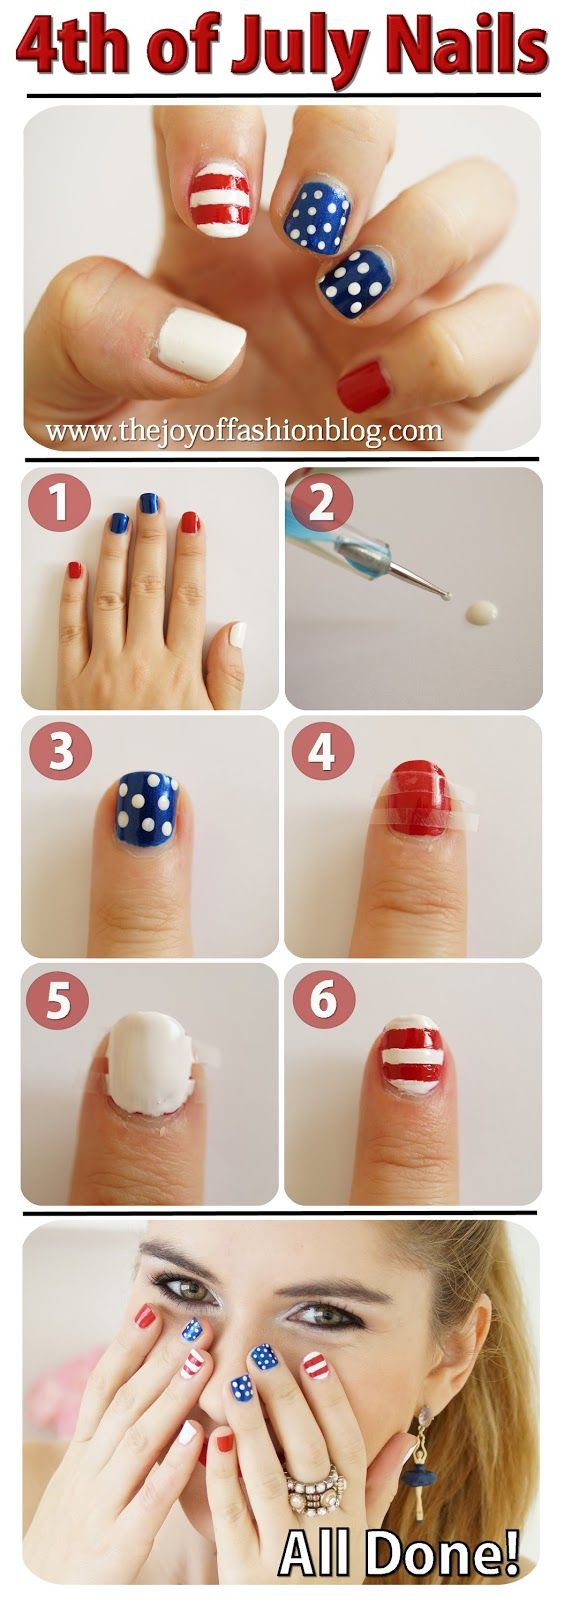 4th of July Nails Tutorial -- Easy and cute! | nails | Pinterest ...